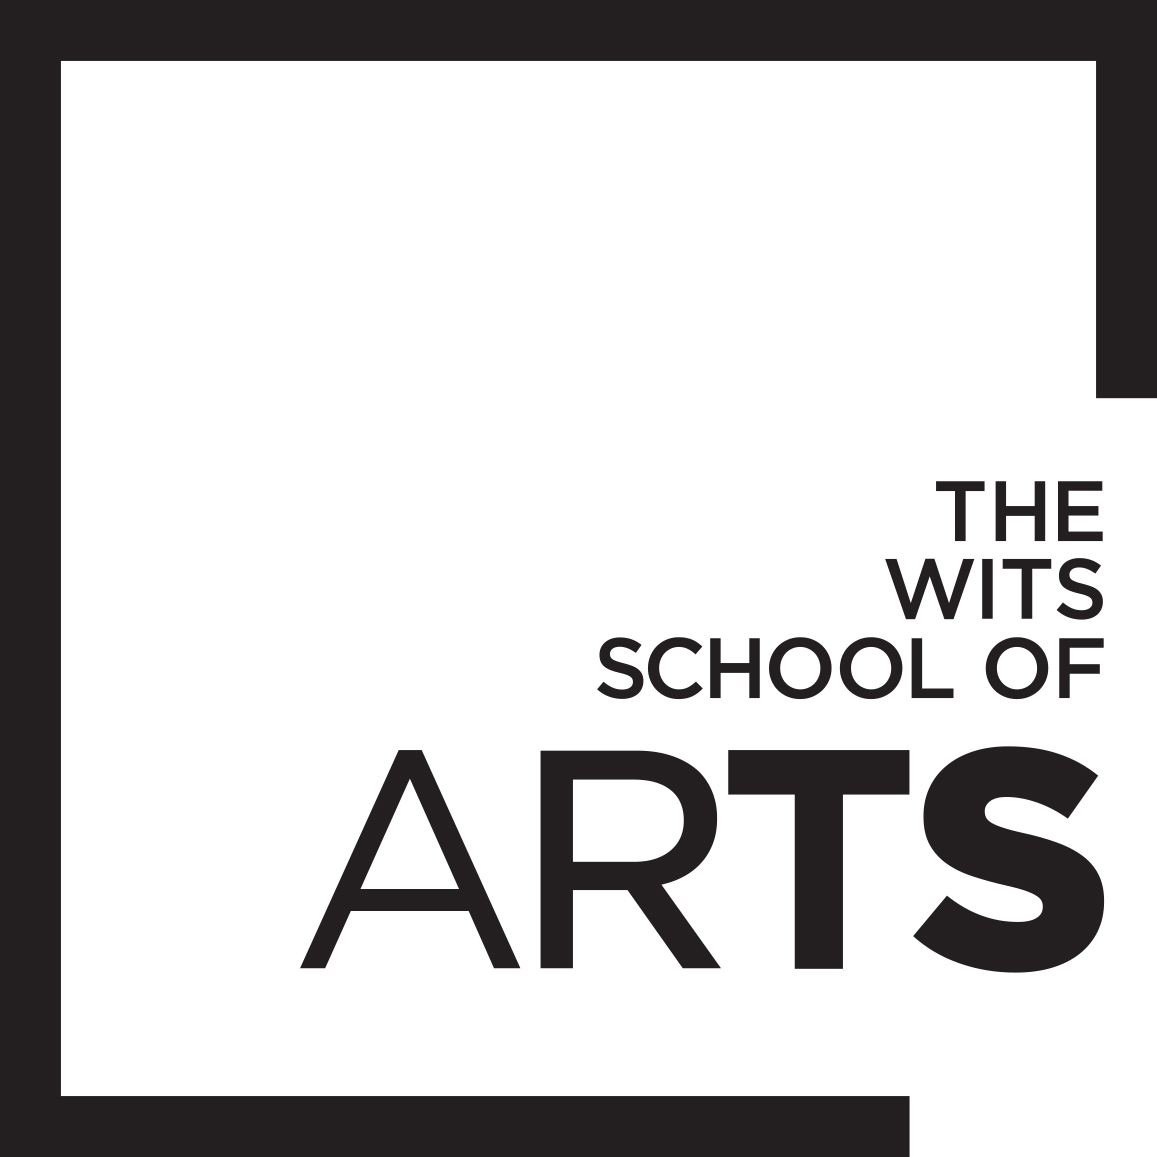 The Wits School of Arts